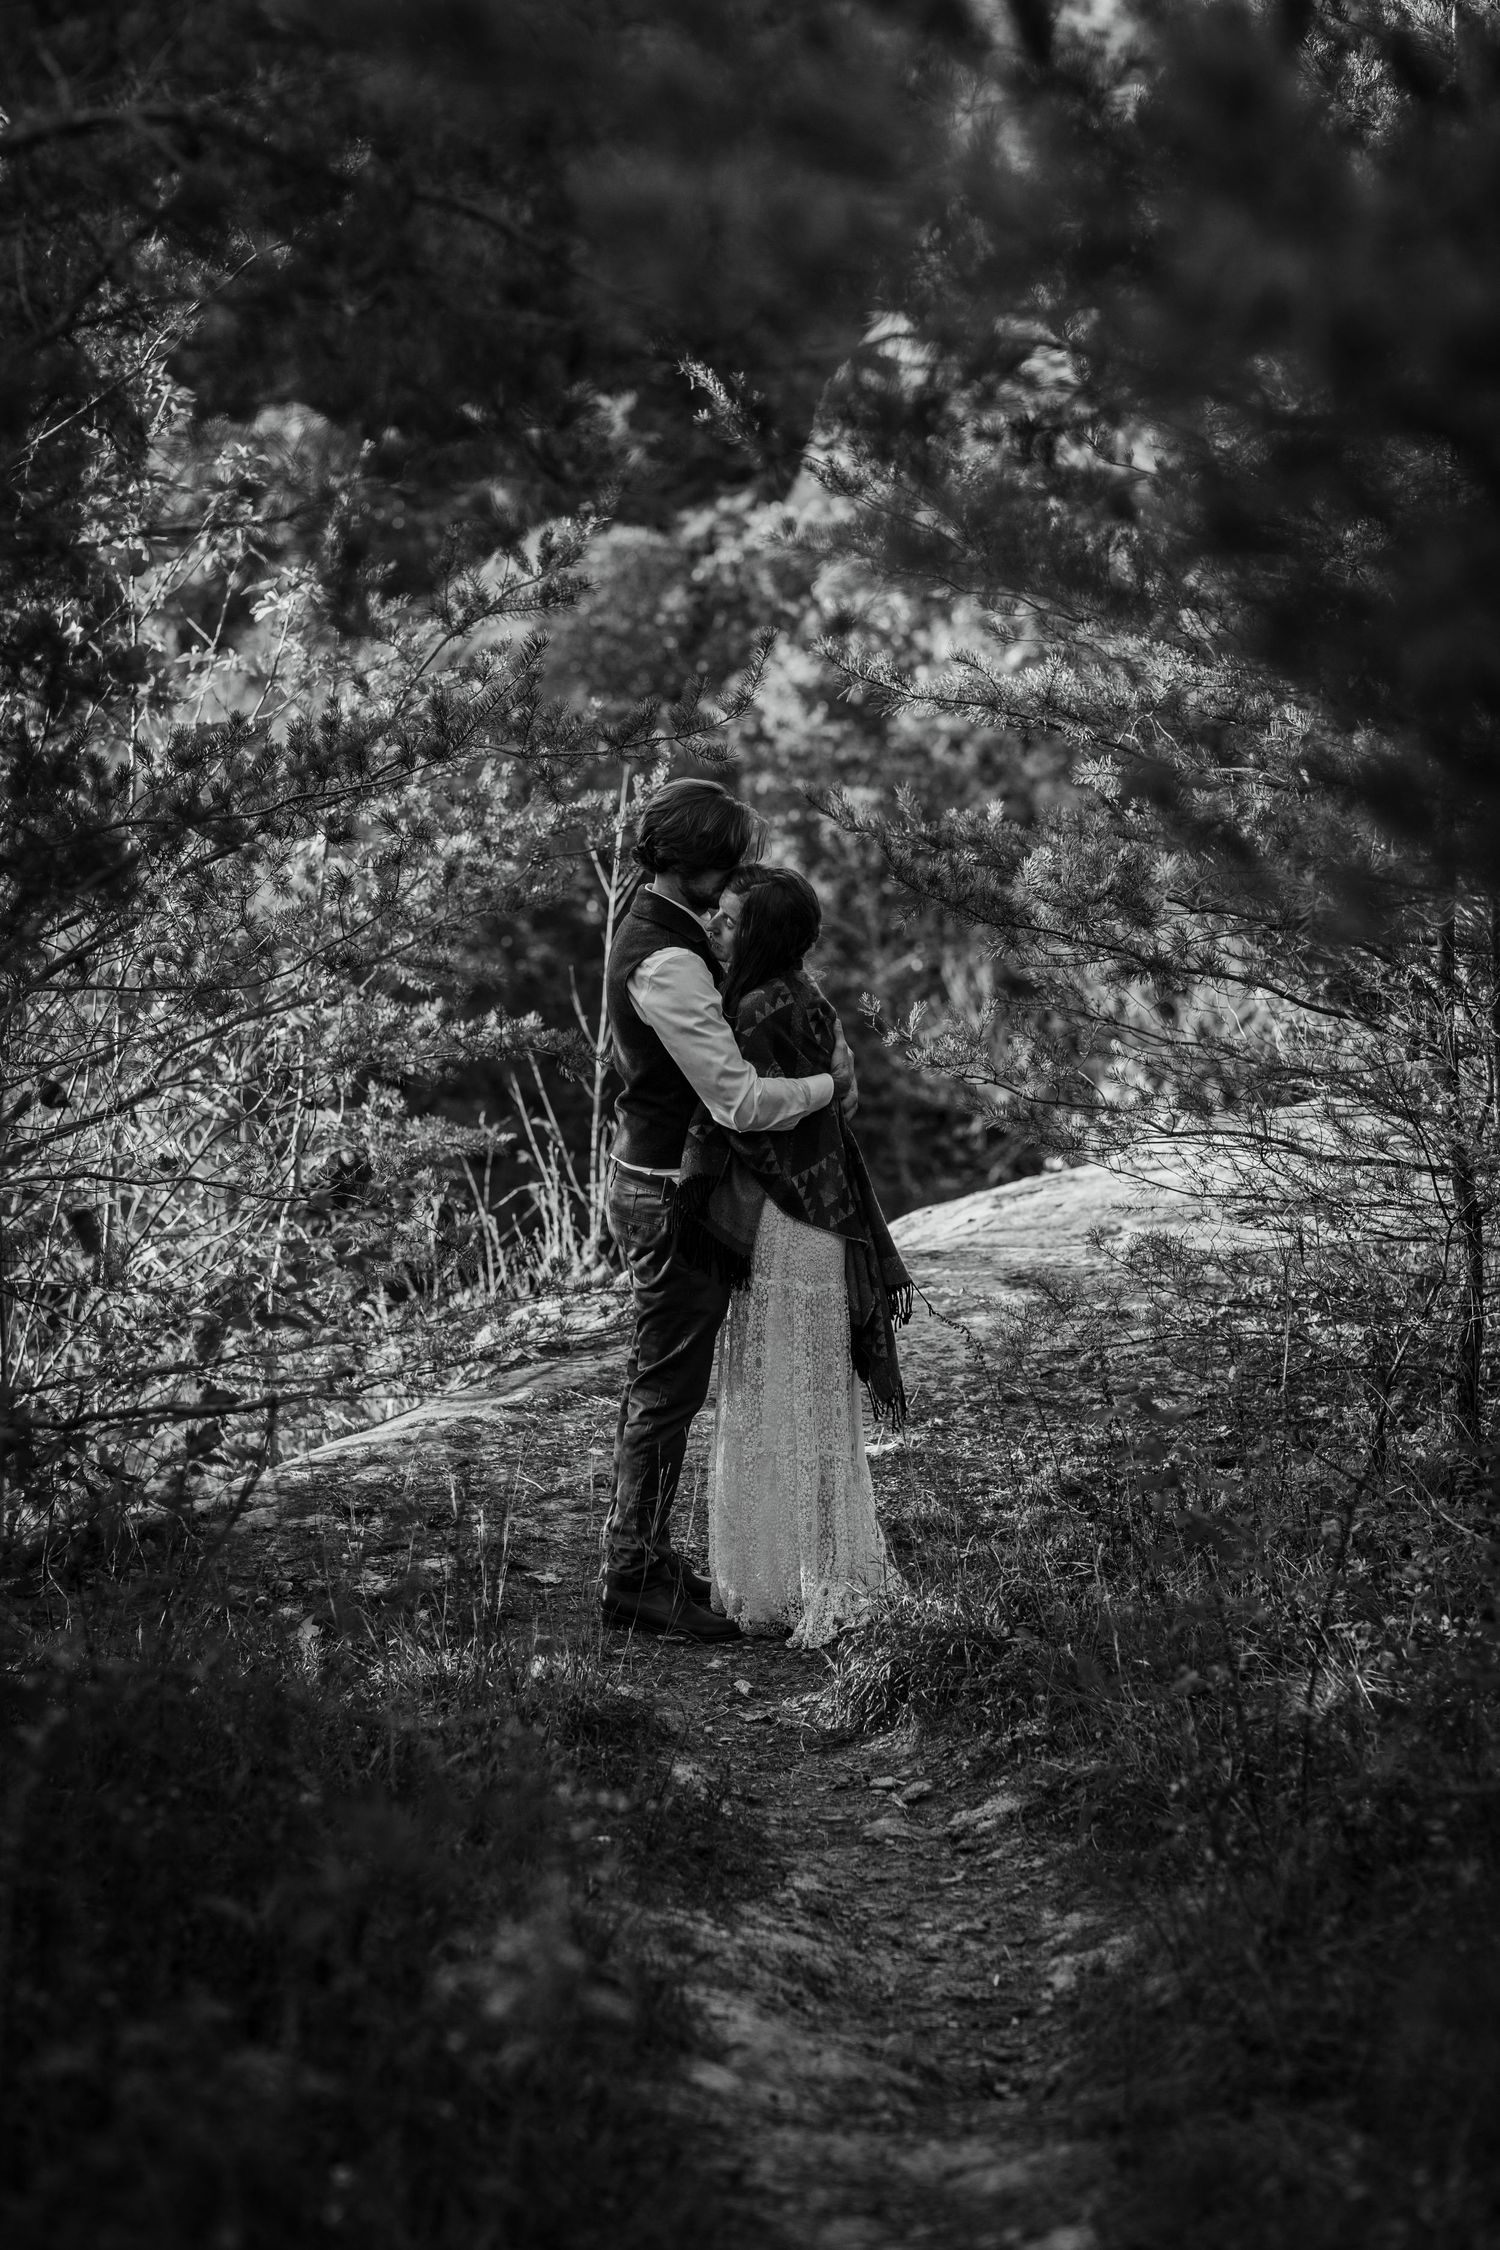 Moody wedding photography Lexington central KY Kentucky unique engagement session couples Red River Gorge